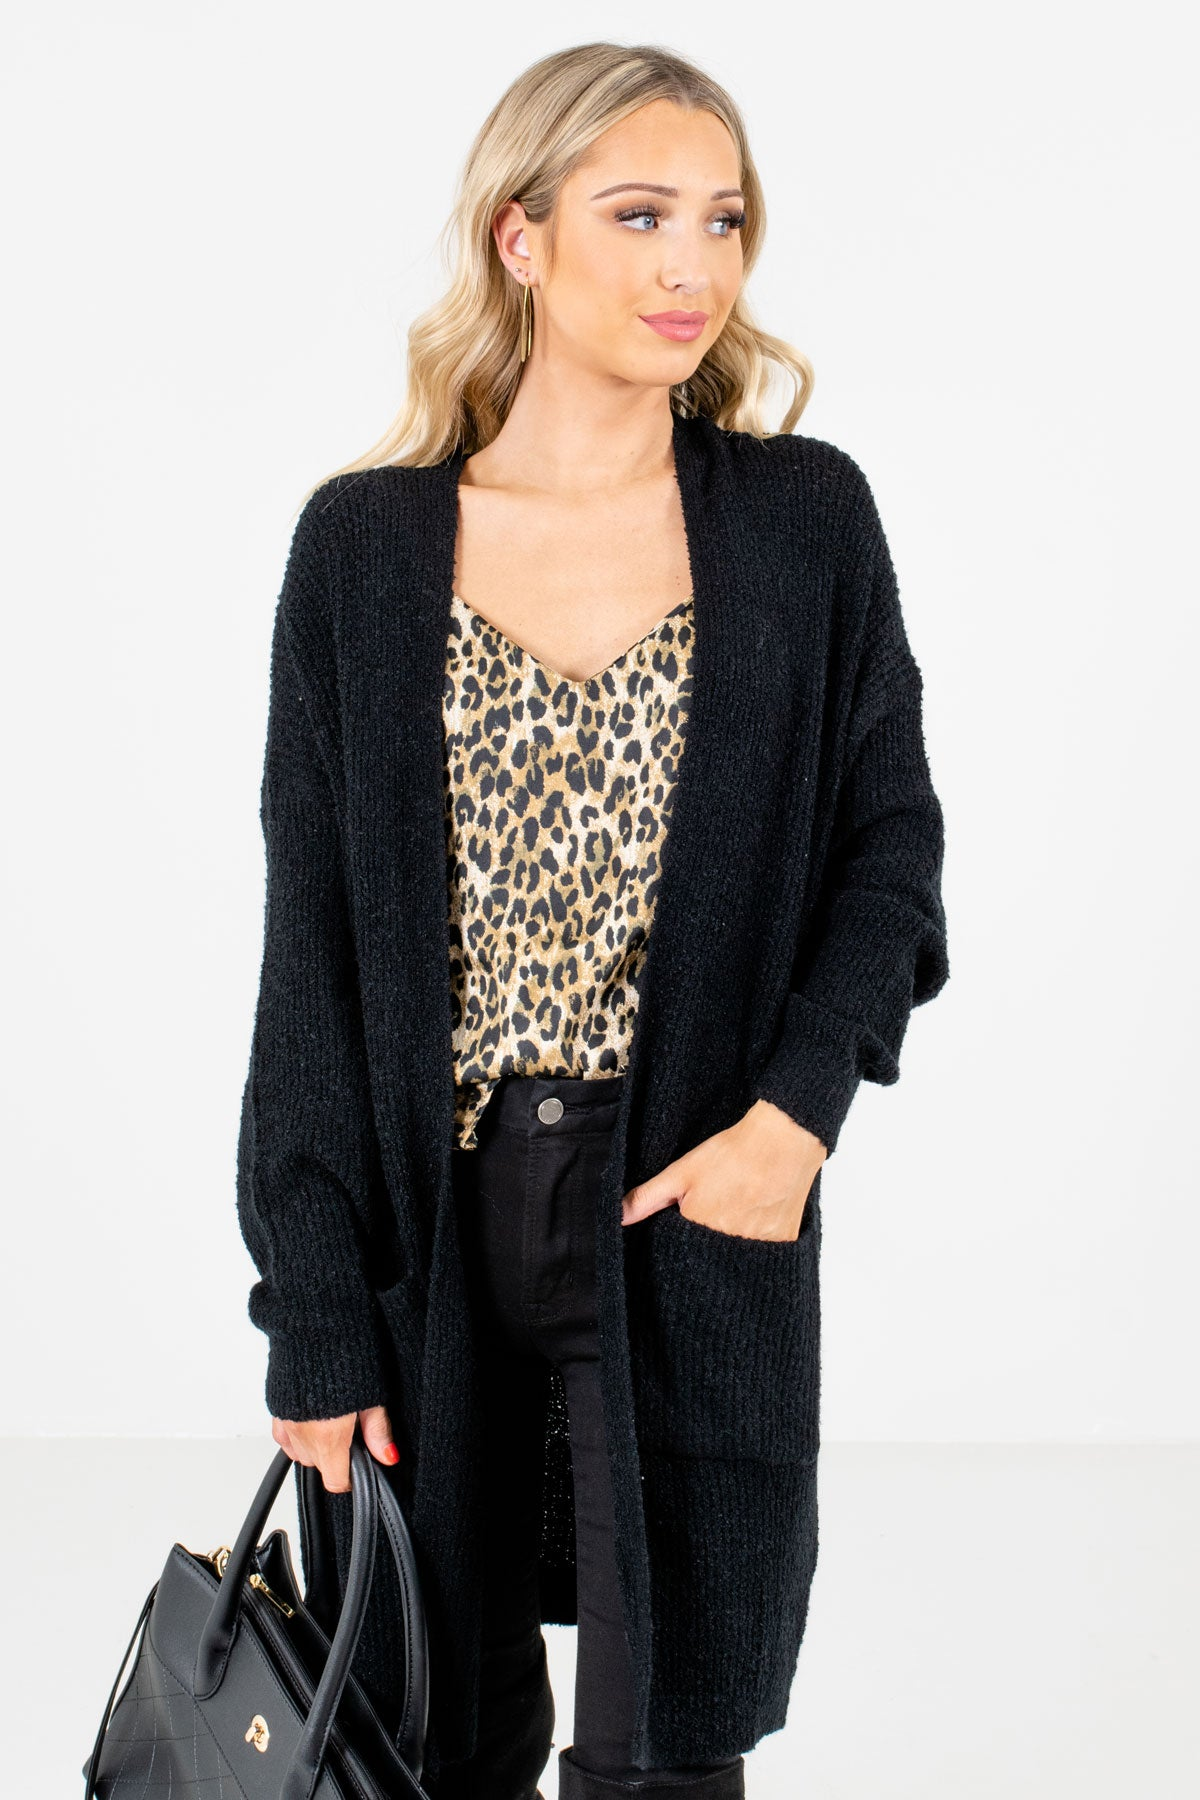 Black High-Quality Knit Material Boutique Cardigans for Women